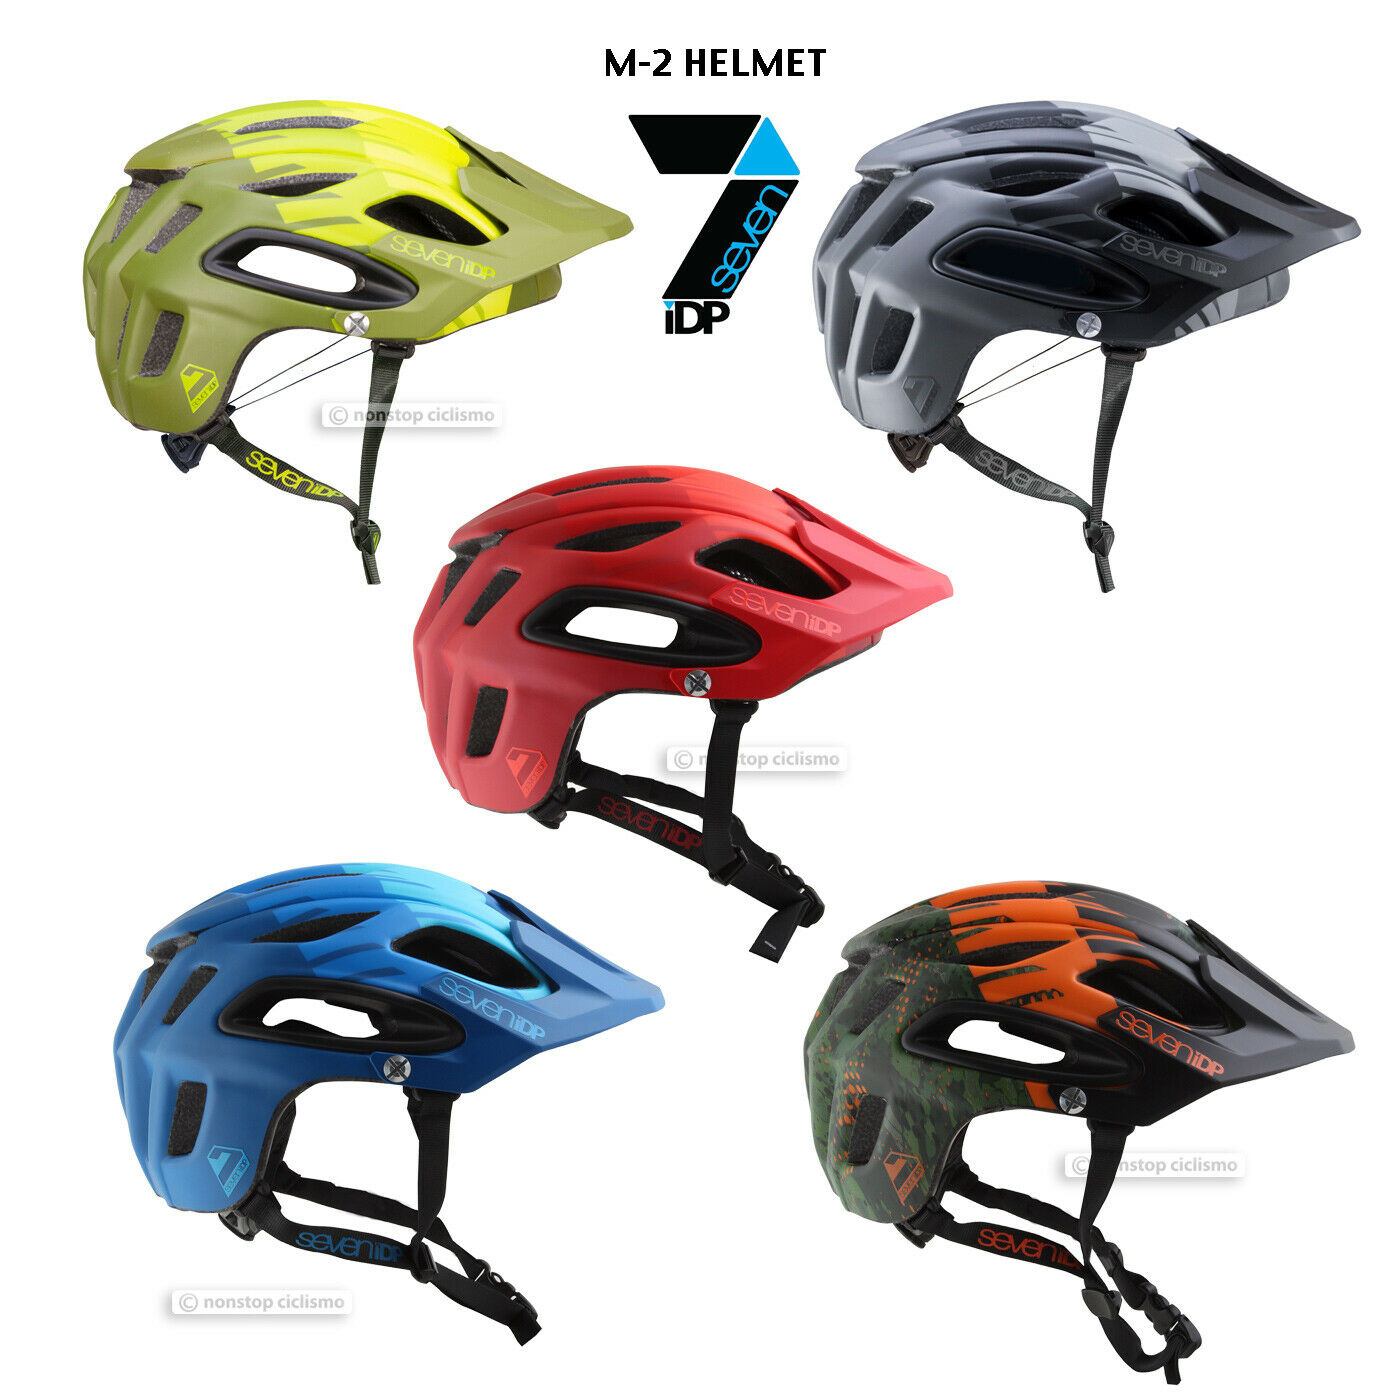 7iDP 2019 M-2 MTB Mountain Bike Cycling Helmet   ALL COLORS - NEW IN BOX